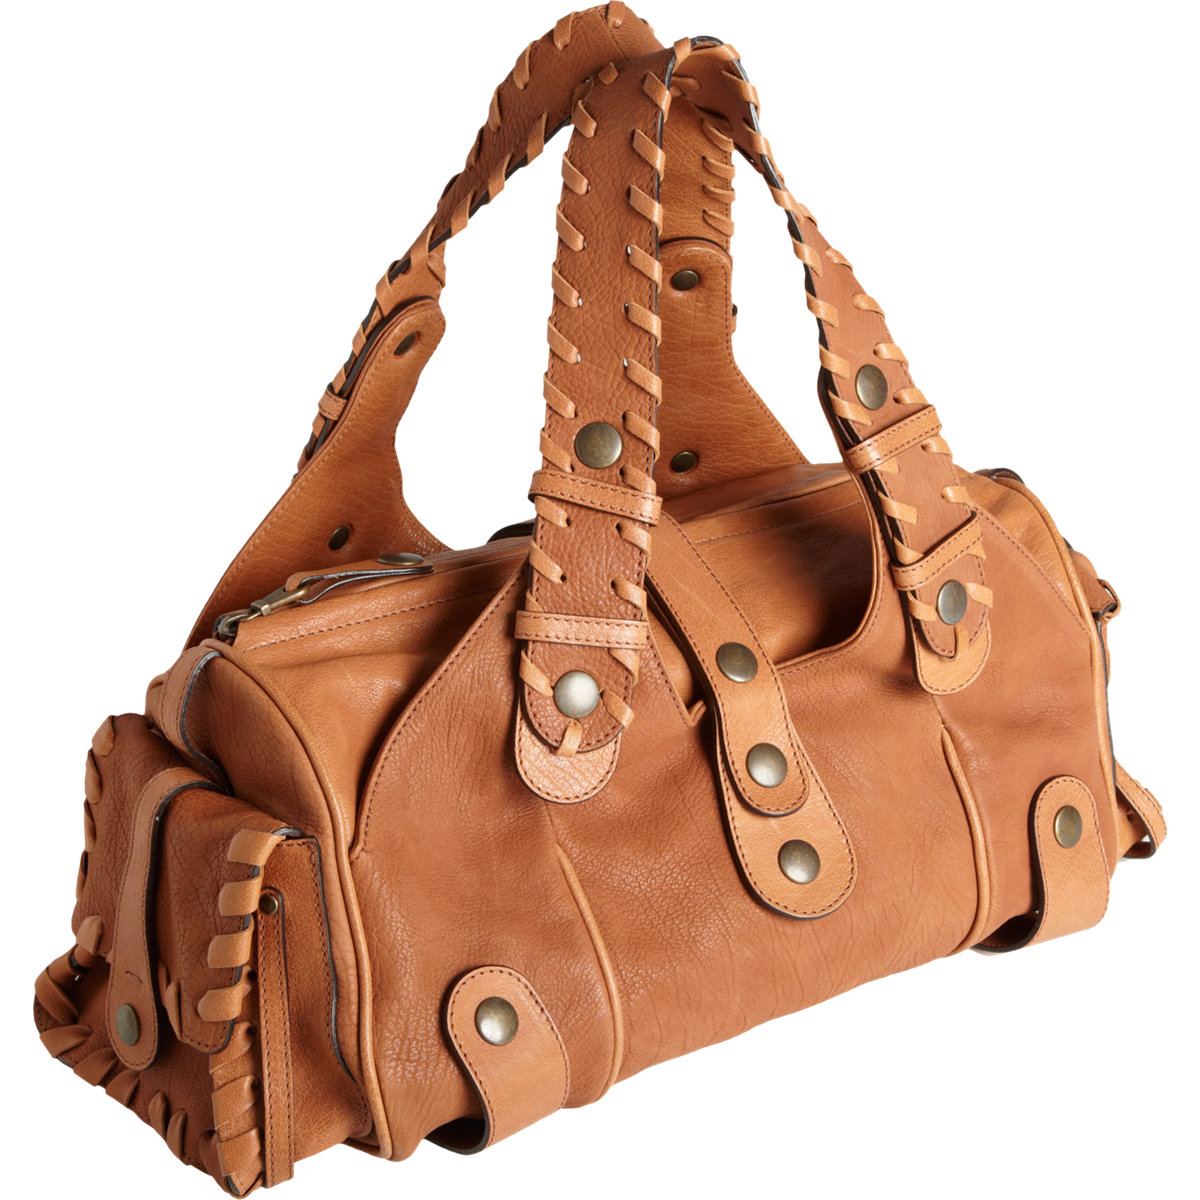 chloe grey bag - Chlo�� Large Silverado Bag in Brown (tan) | Lyst